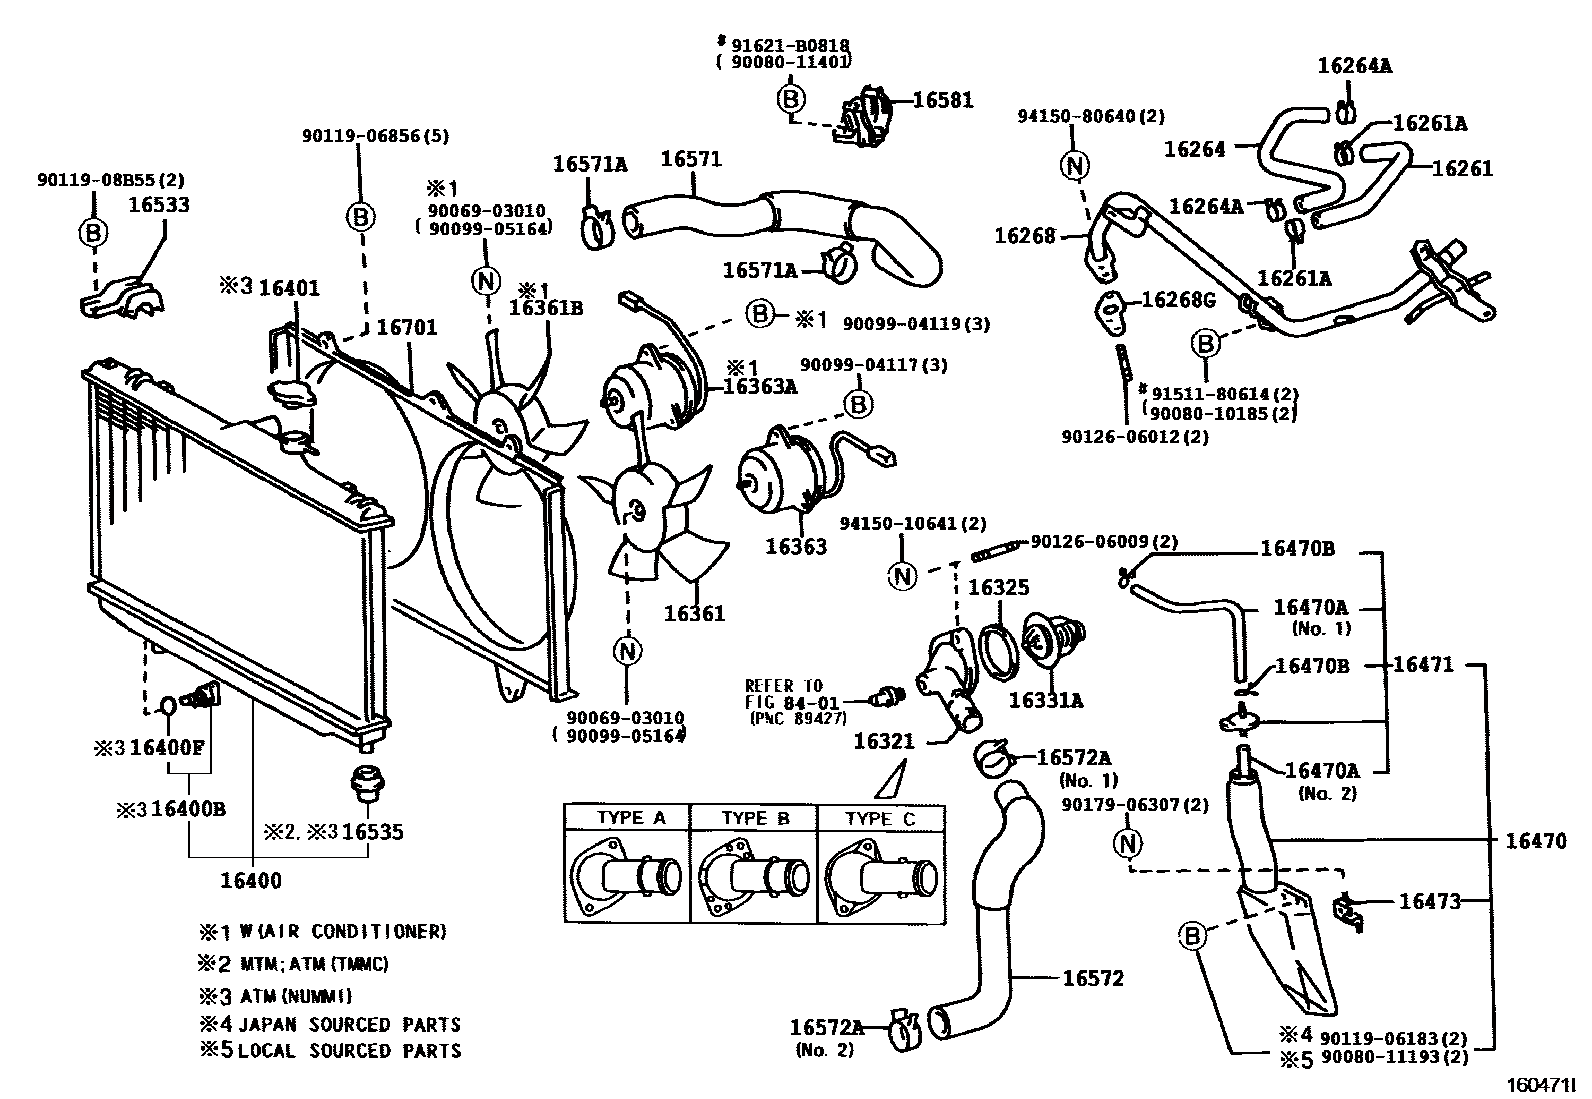 2000 toyota camry parts diagram 3 wire led christmas lights wiring 1996 tacoma 4 engine get free